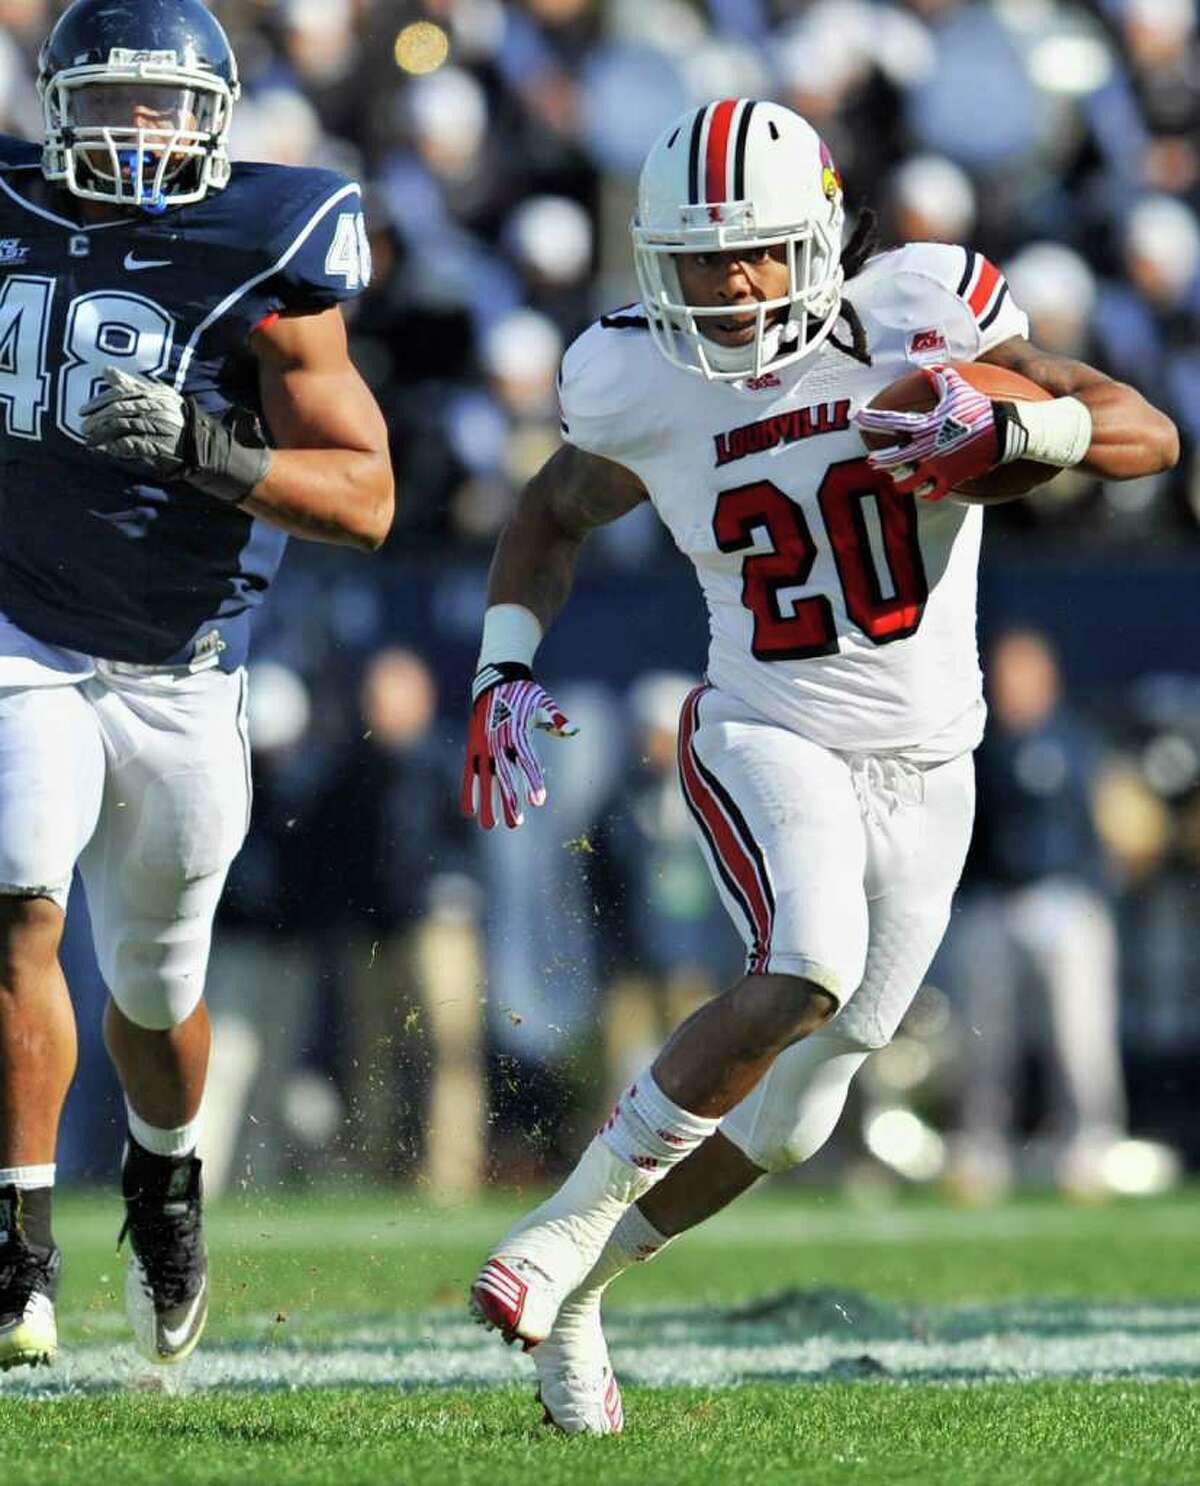 Louisville's Victor Anderson, right, breaks away from Connecticut's Trevardo Williams, left, in the first half of an NCAA college football game at Rentschler Field in East Hartford, Conn., Saturday, Nov. 19, 2011. Anderson rushed for 72 yards as Louisville beat Connecticut 34-20. (AP Photo/Jessica Hill)